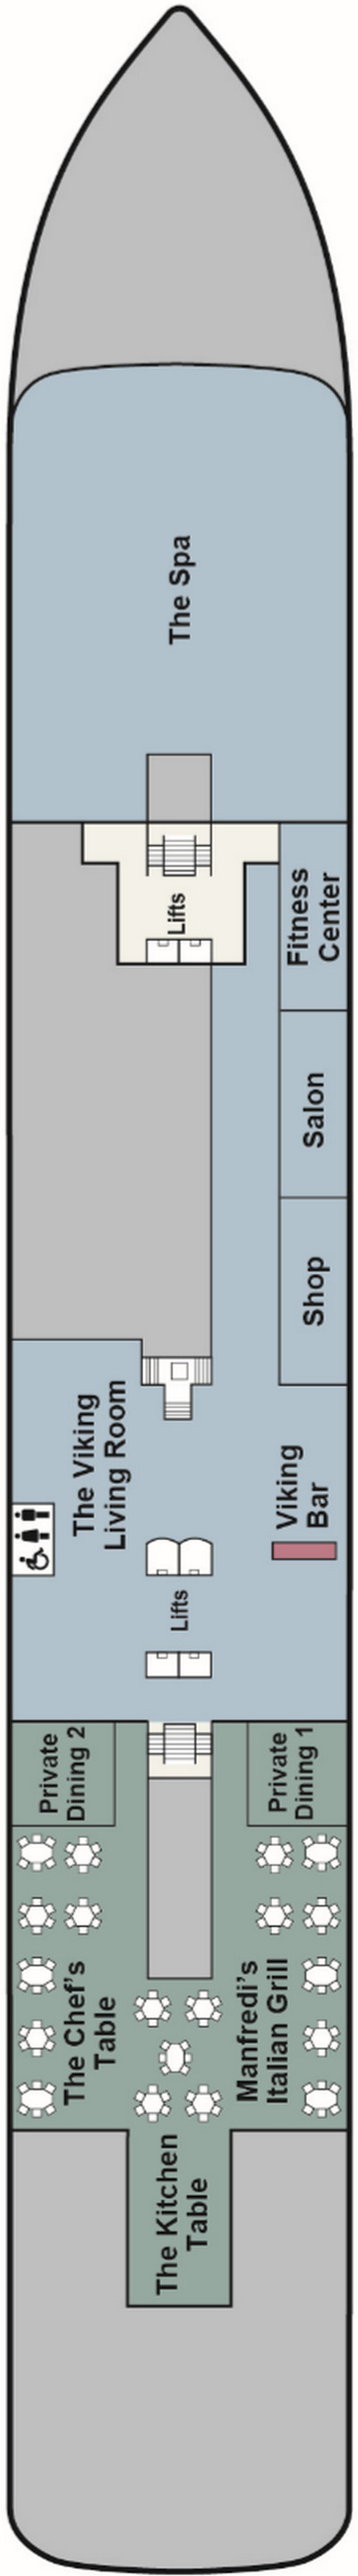 Viking Sea Deck 1 layout